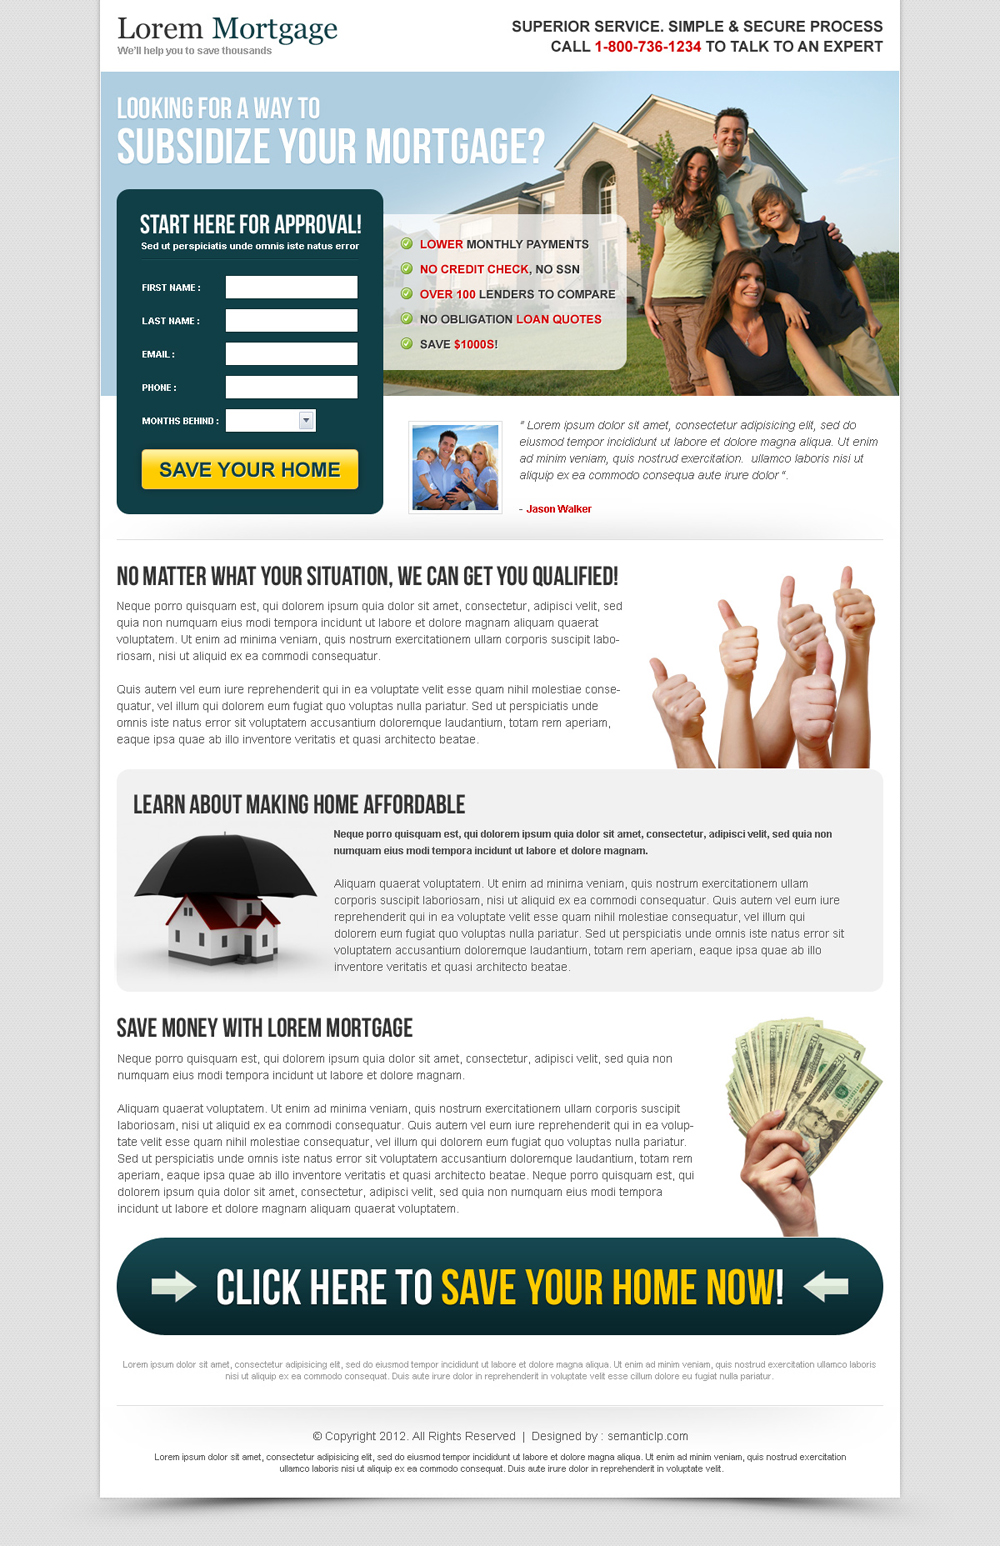 mortgage-business-service-landing-page-design-templates-to-subsidize-your-mortgage-004